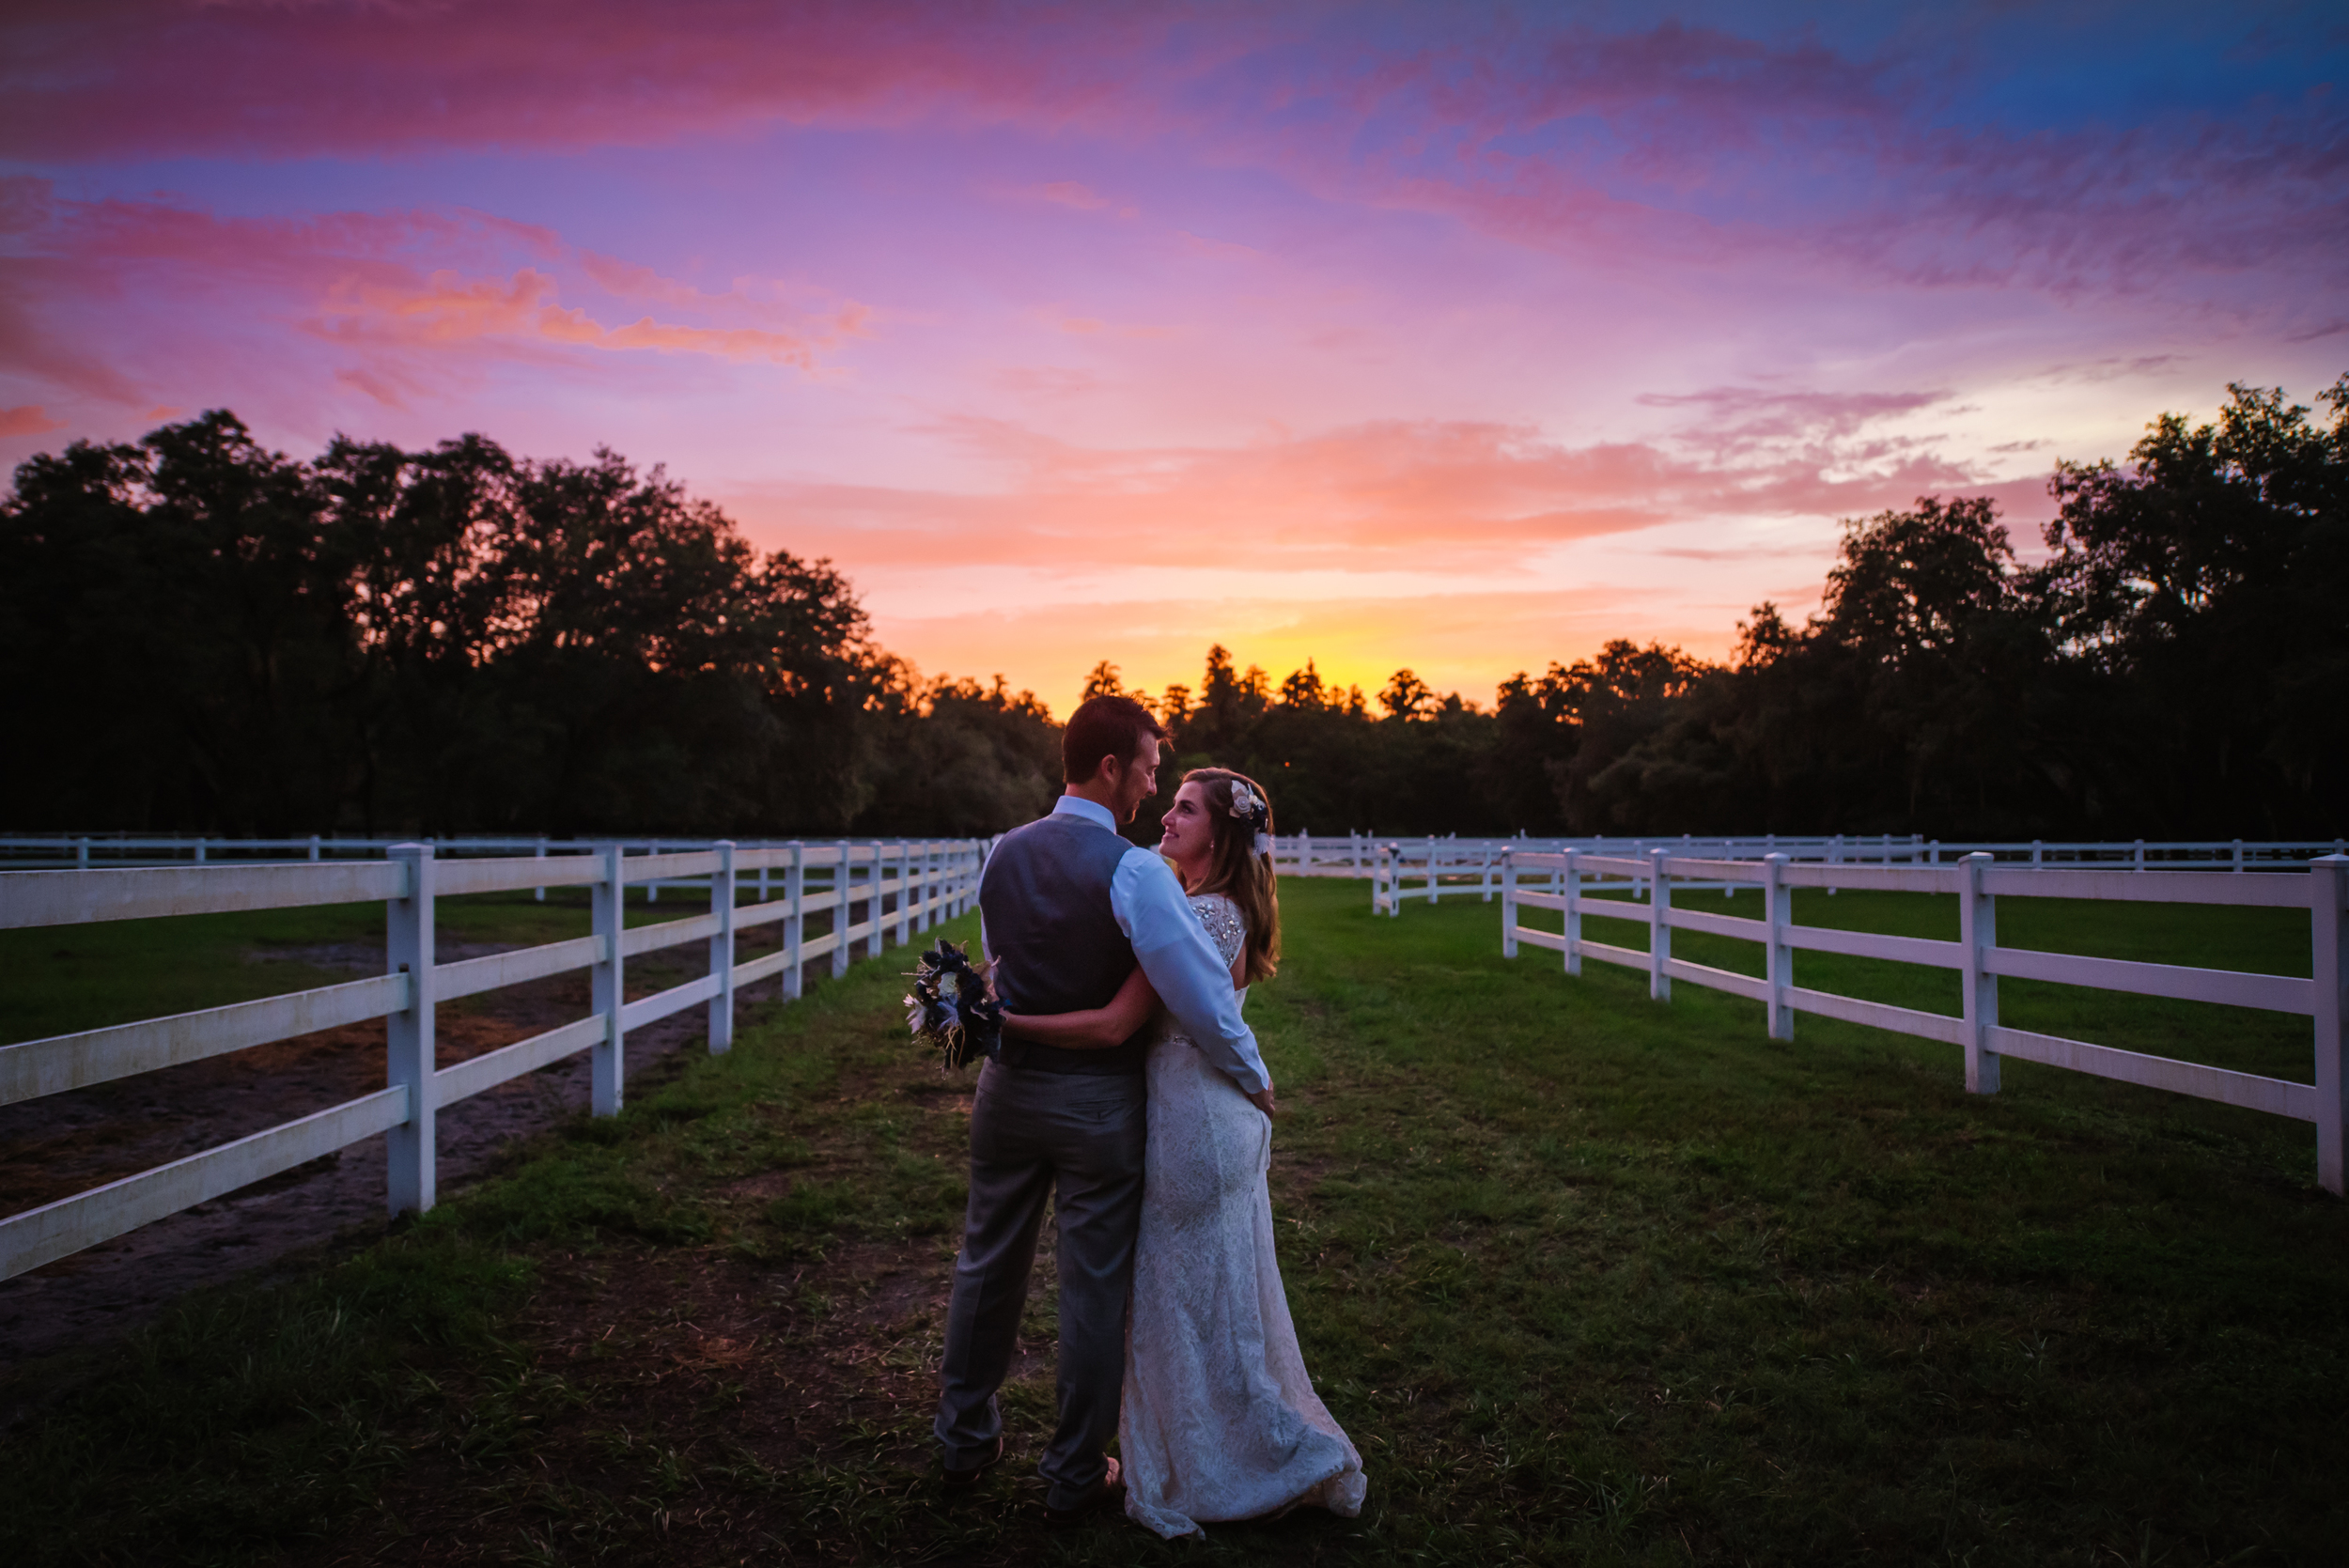 Scottie & Tyler had a lovely wedding at the Lange farm. Even though we had to go to plan B for the ceremony due to rain they stayed smiling and were rewarded with an incredible sunset!